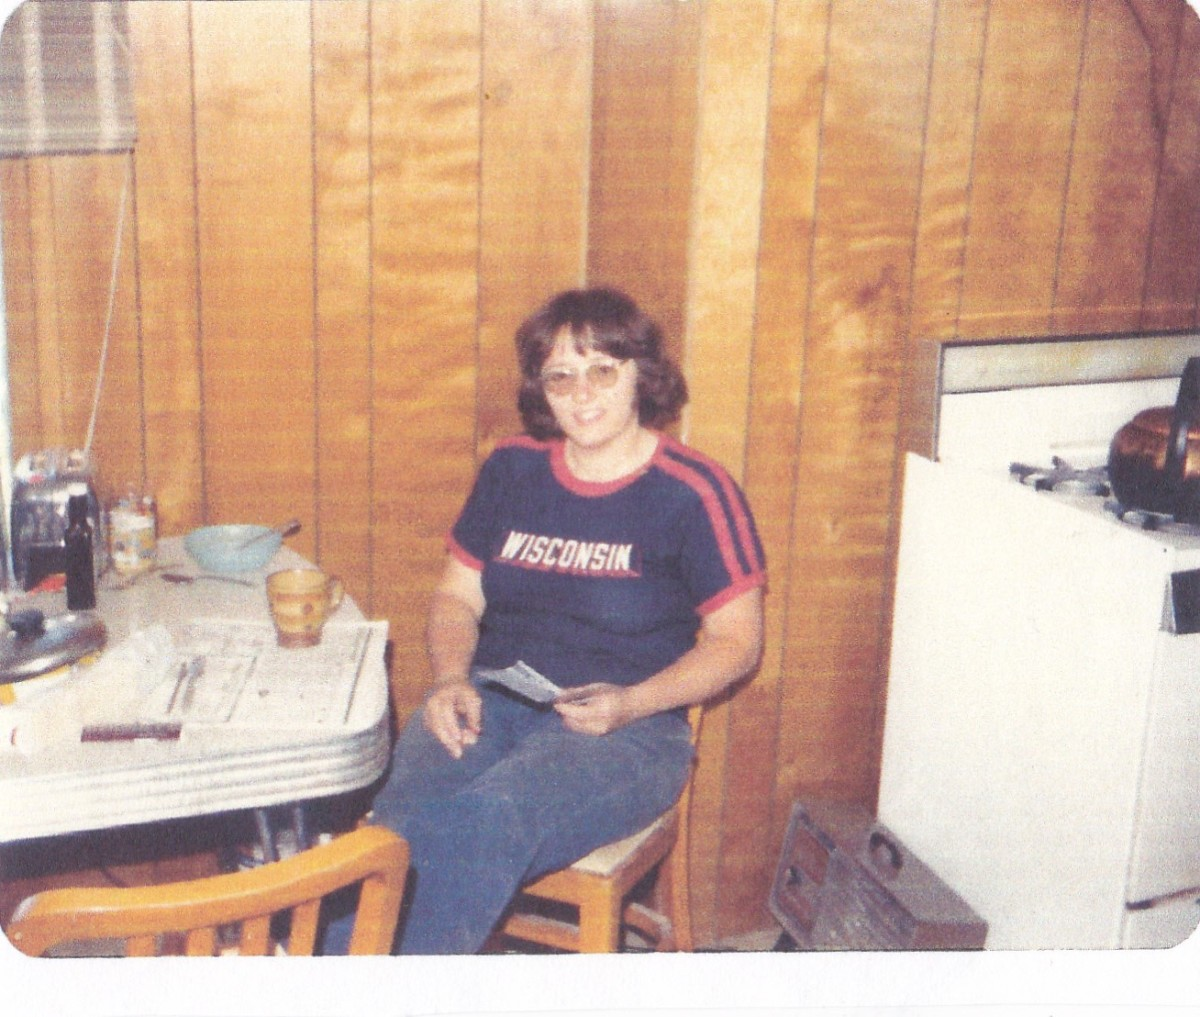 Patty had just received news of getting accepted into the University of Minnesota vet school.  Picture taken in 1982